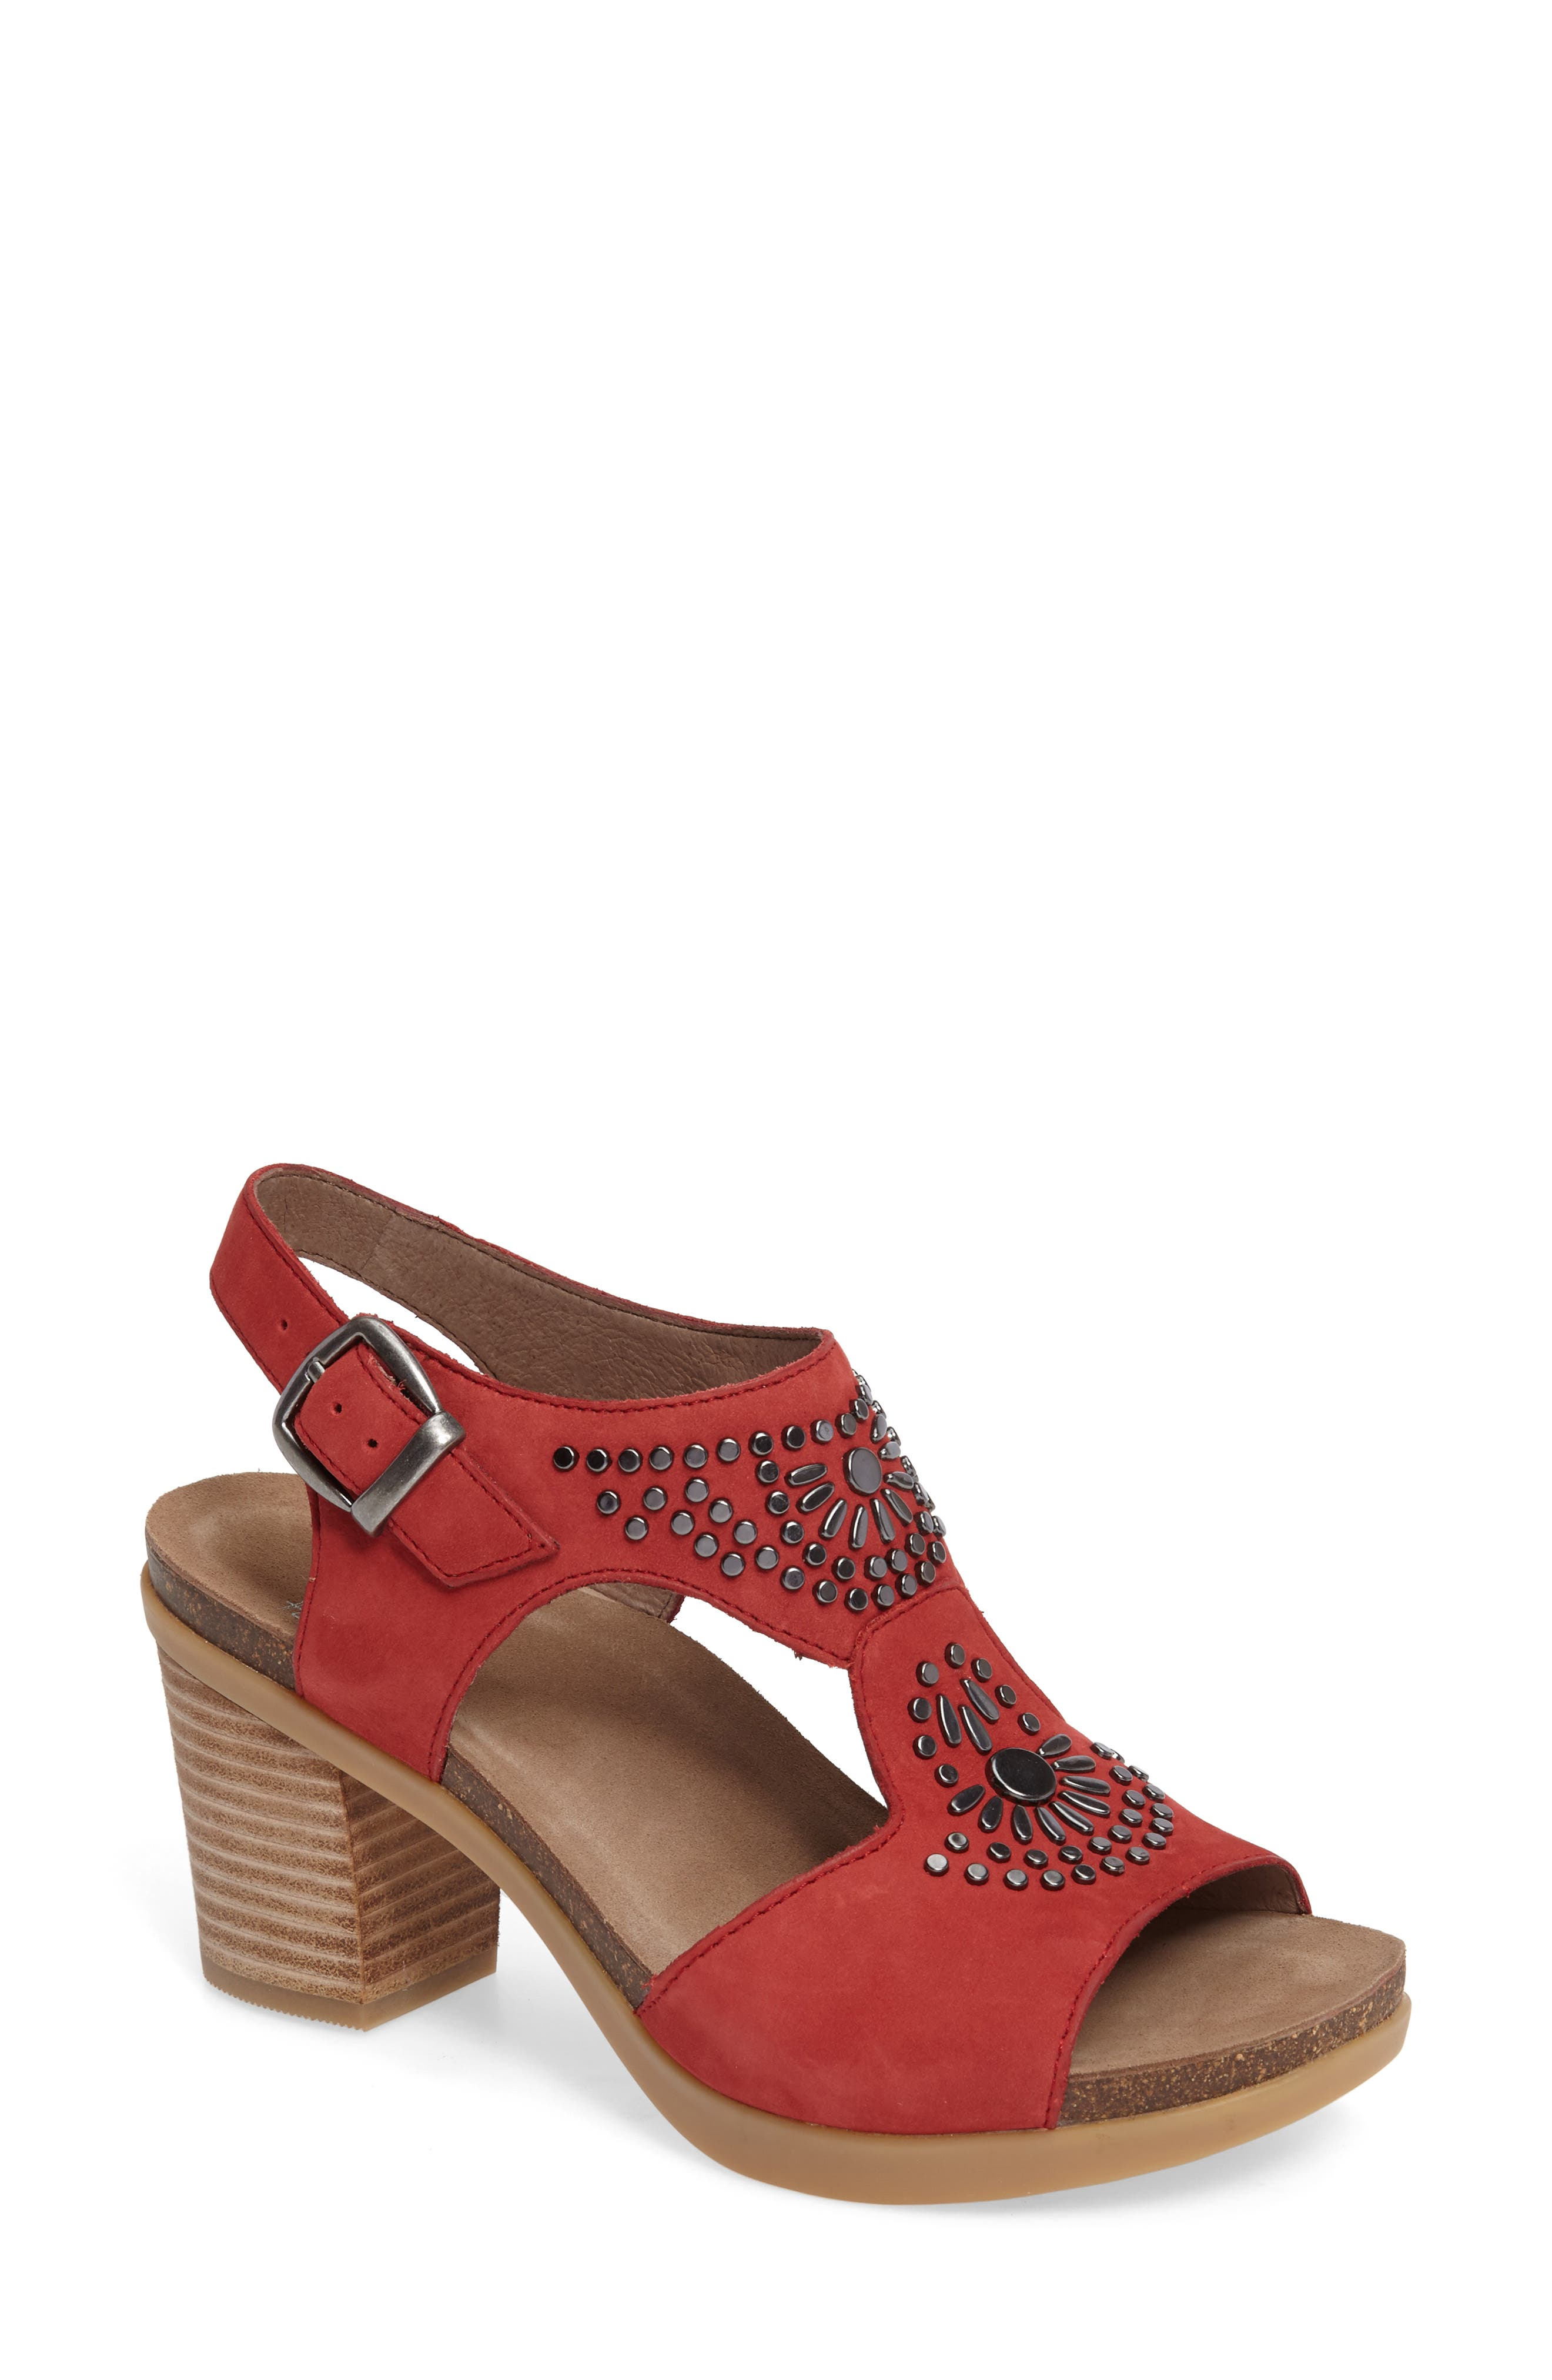 Deandra Studded Sandal,                             Main thumbnail 1, color,                             Red Nubuck Leather